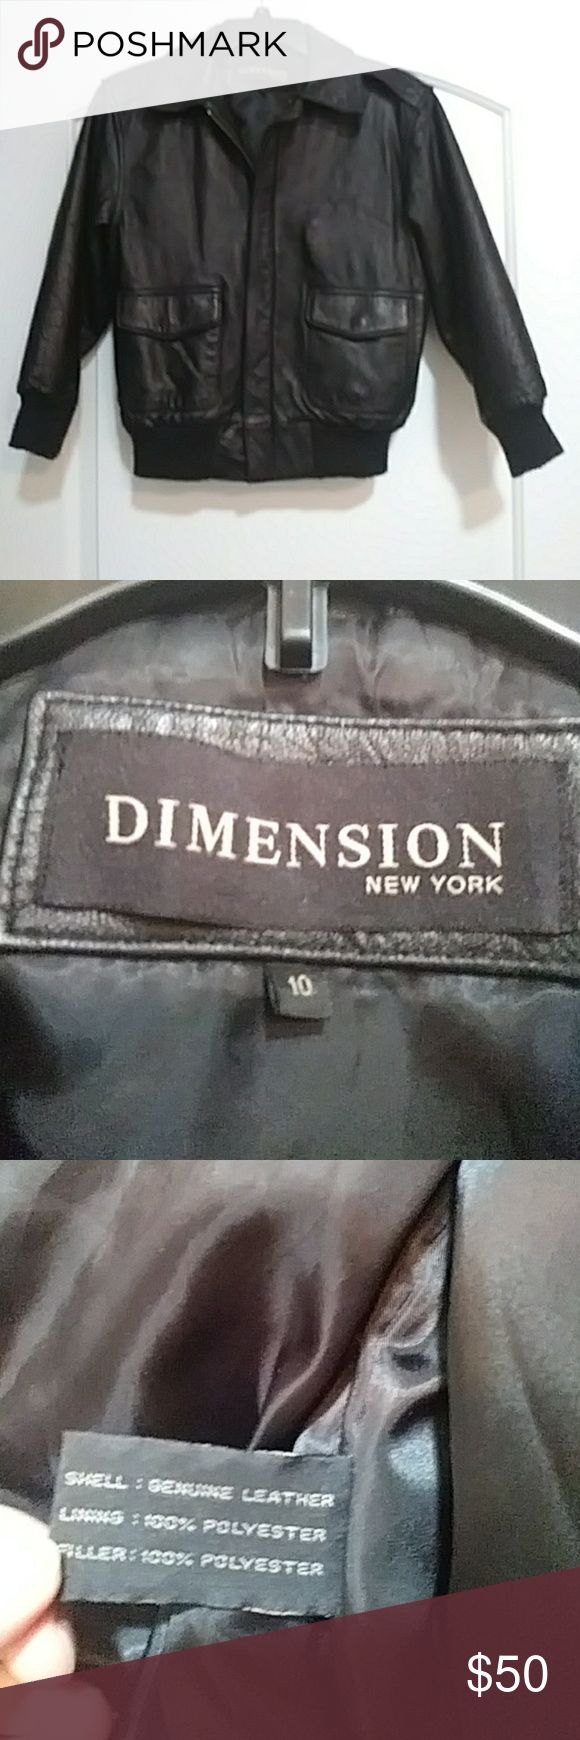 80s leather jacket This is a vintage leather jacket made in the 80s comma it's in great condition Dimension Jackets & Coats